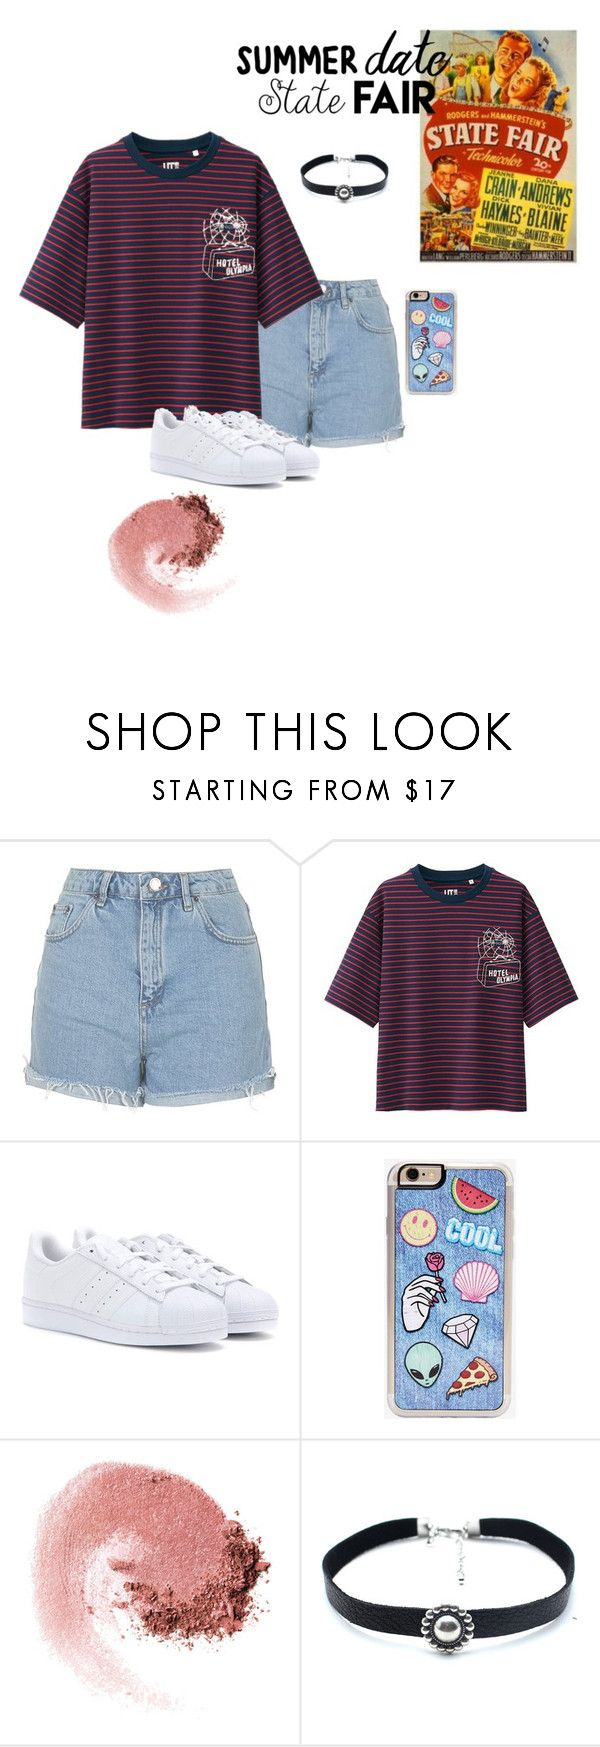 """""""state fair (why is staying harder than leaving?)"""" by petewentzstan ❤ liked on Polyvore featuring Topshop, Uniqlo, adidas, Zero Gravity, NARS Cosmetics, Child Of Wild, statefair and summerdate"""